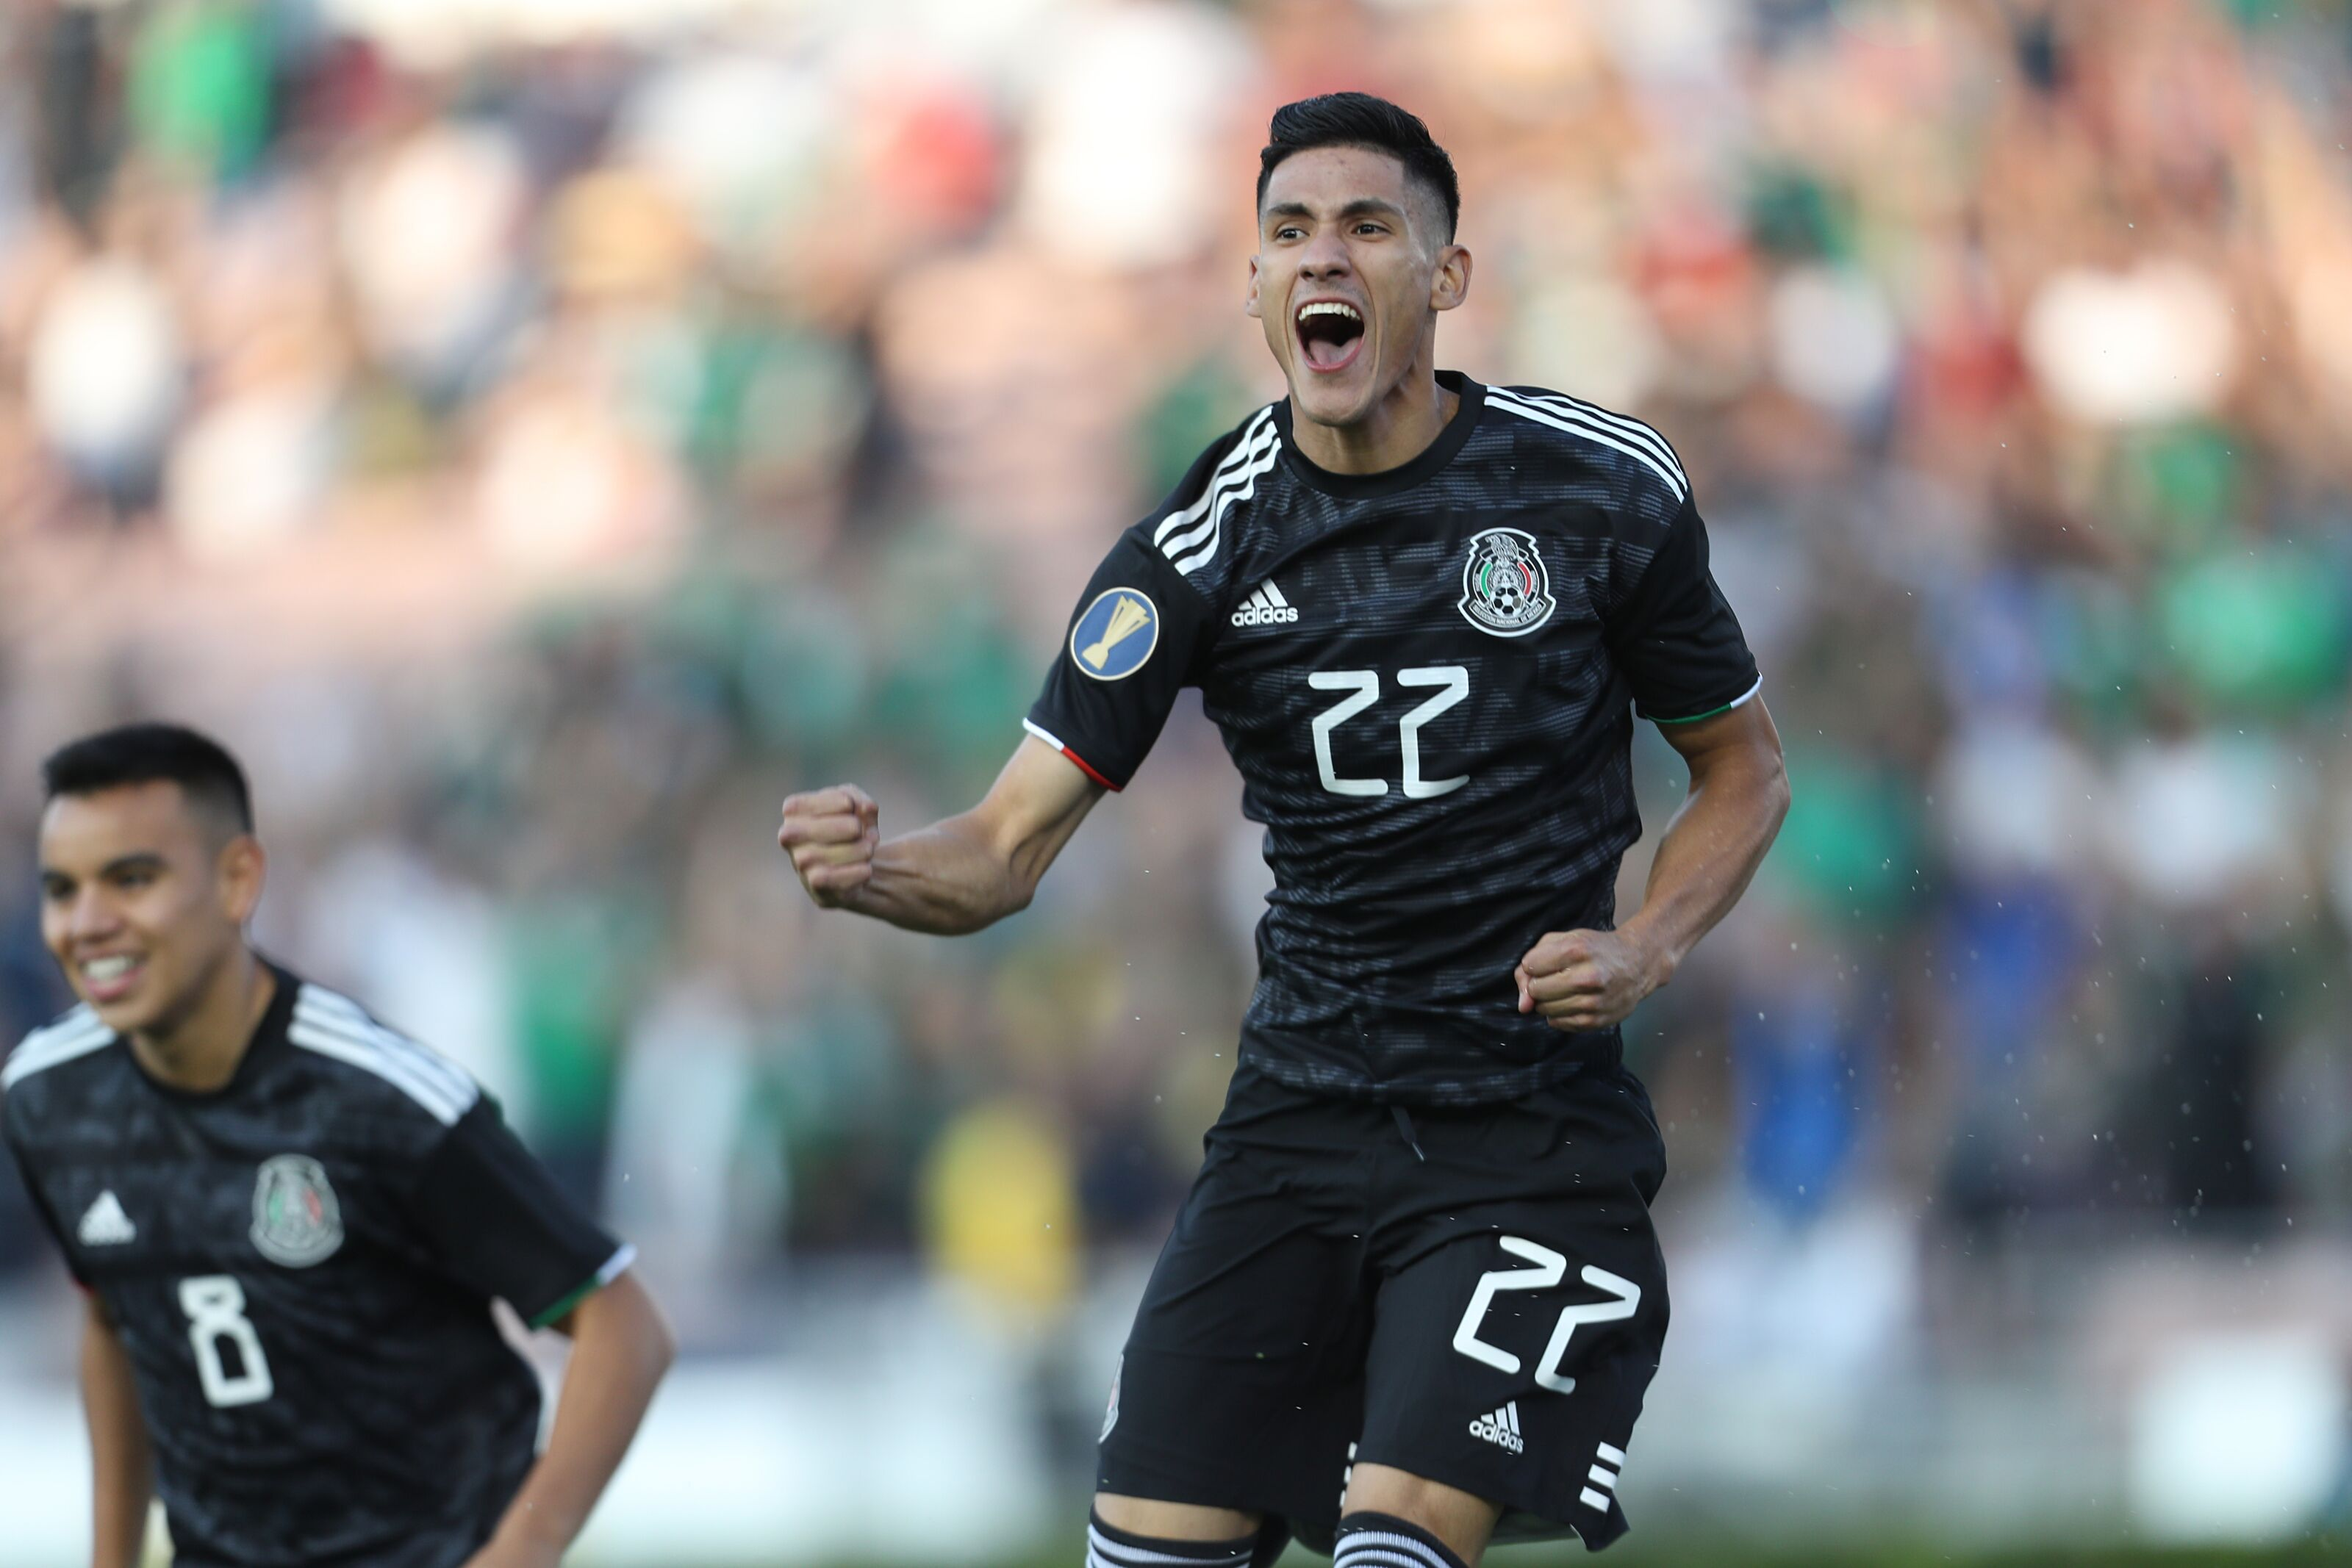 LA Galaxy: Uriel Antuna thrives in Gold Cup debut with Mexico